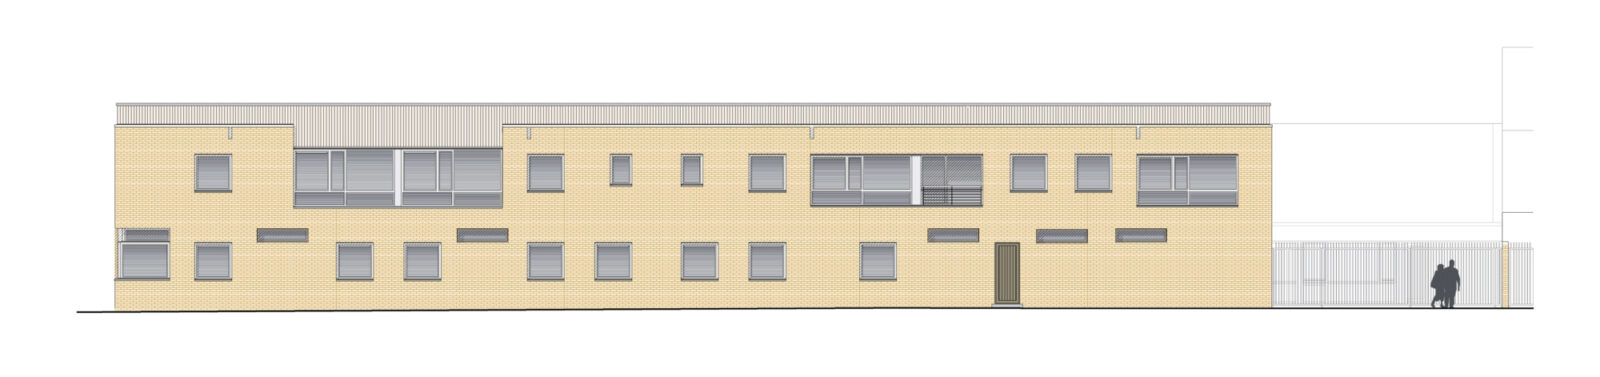 Csch Road West Elevation